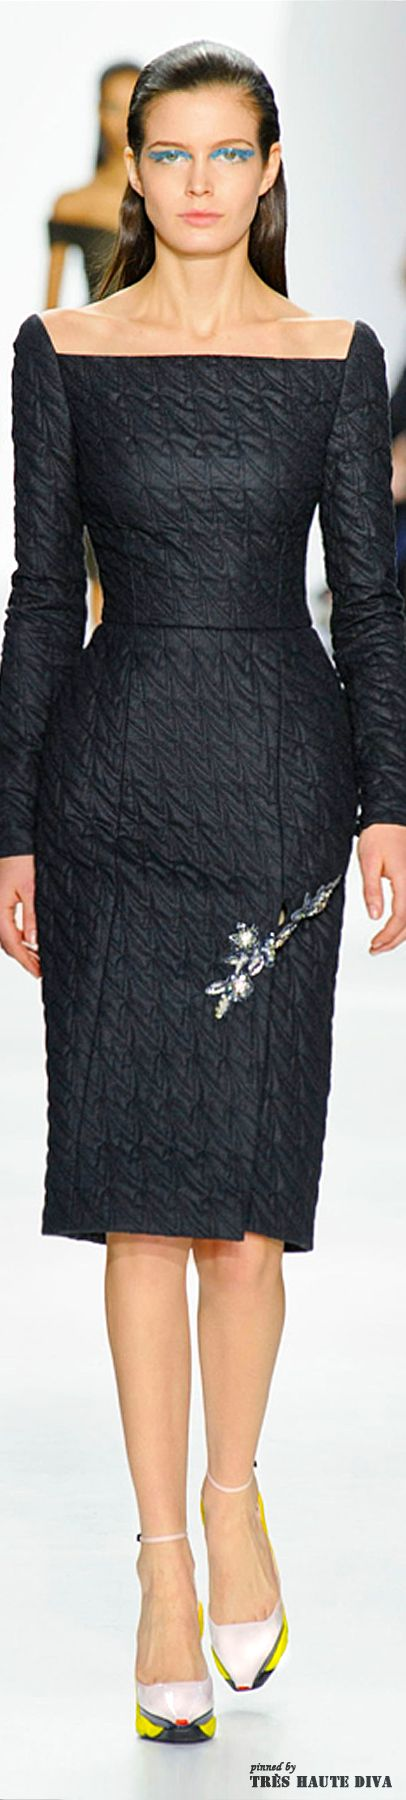 #2locos www.2locos.com Paris Fashion Week Christian Dior Fall 2014 RTW